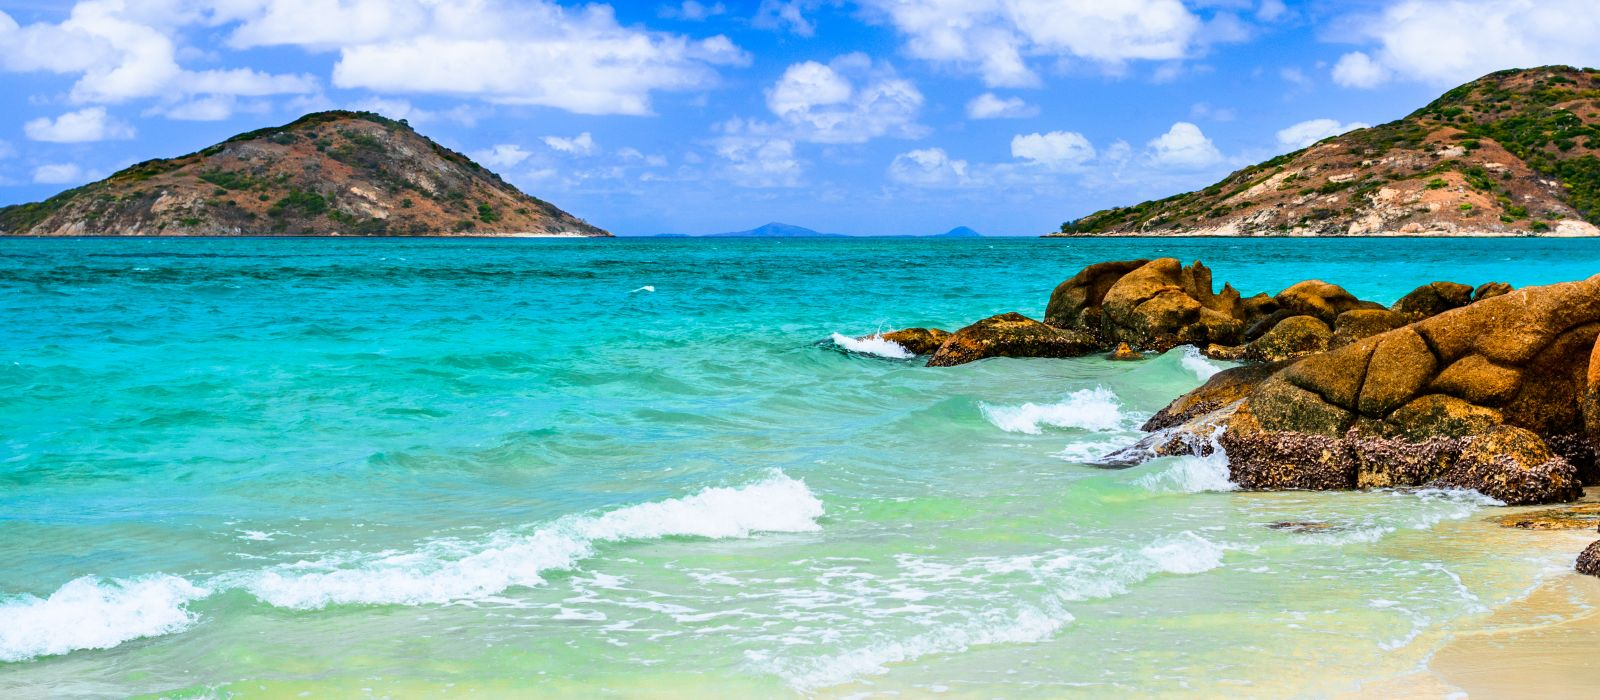 Luxury Down Under: Culture, Landscapes & Paradise Islands Tour Trip 6